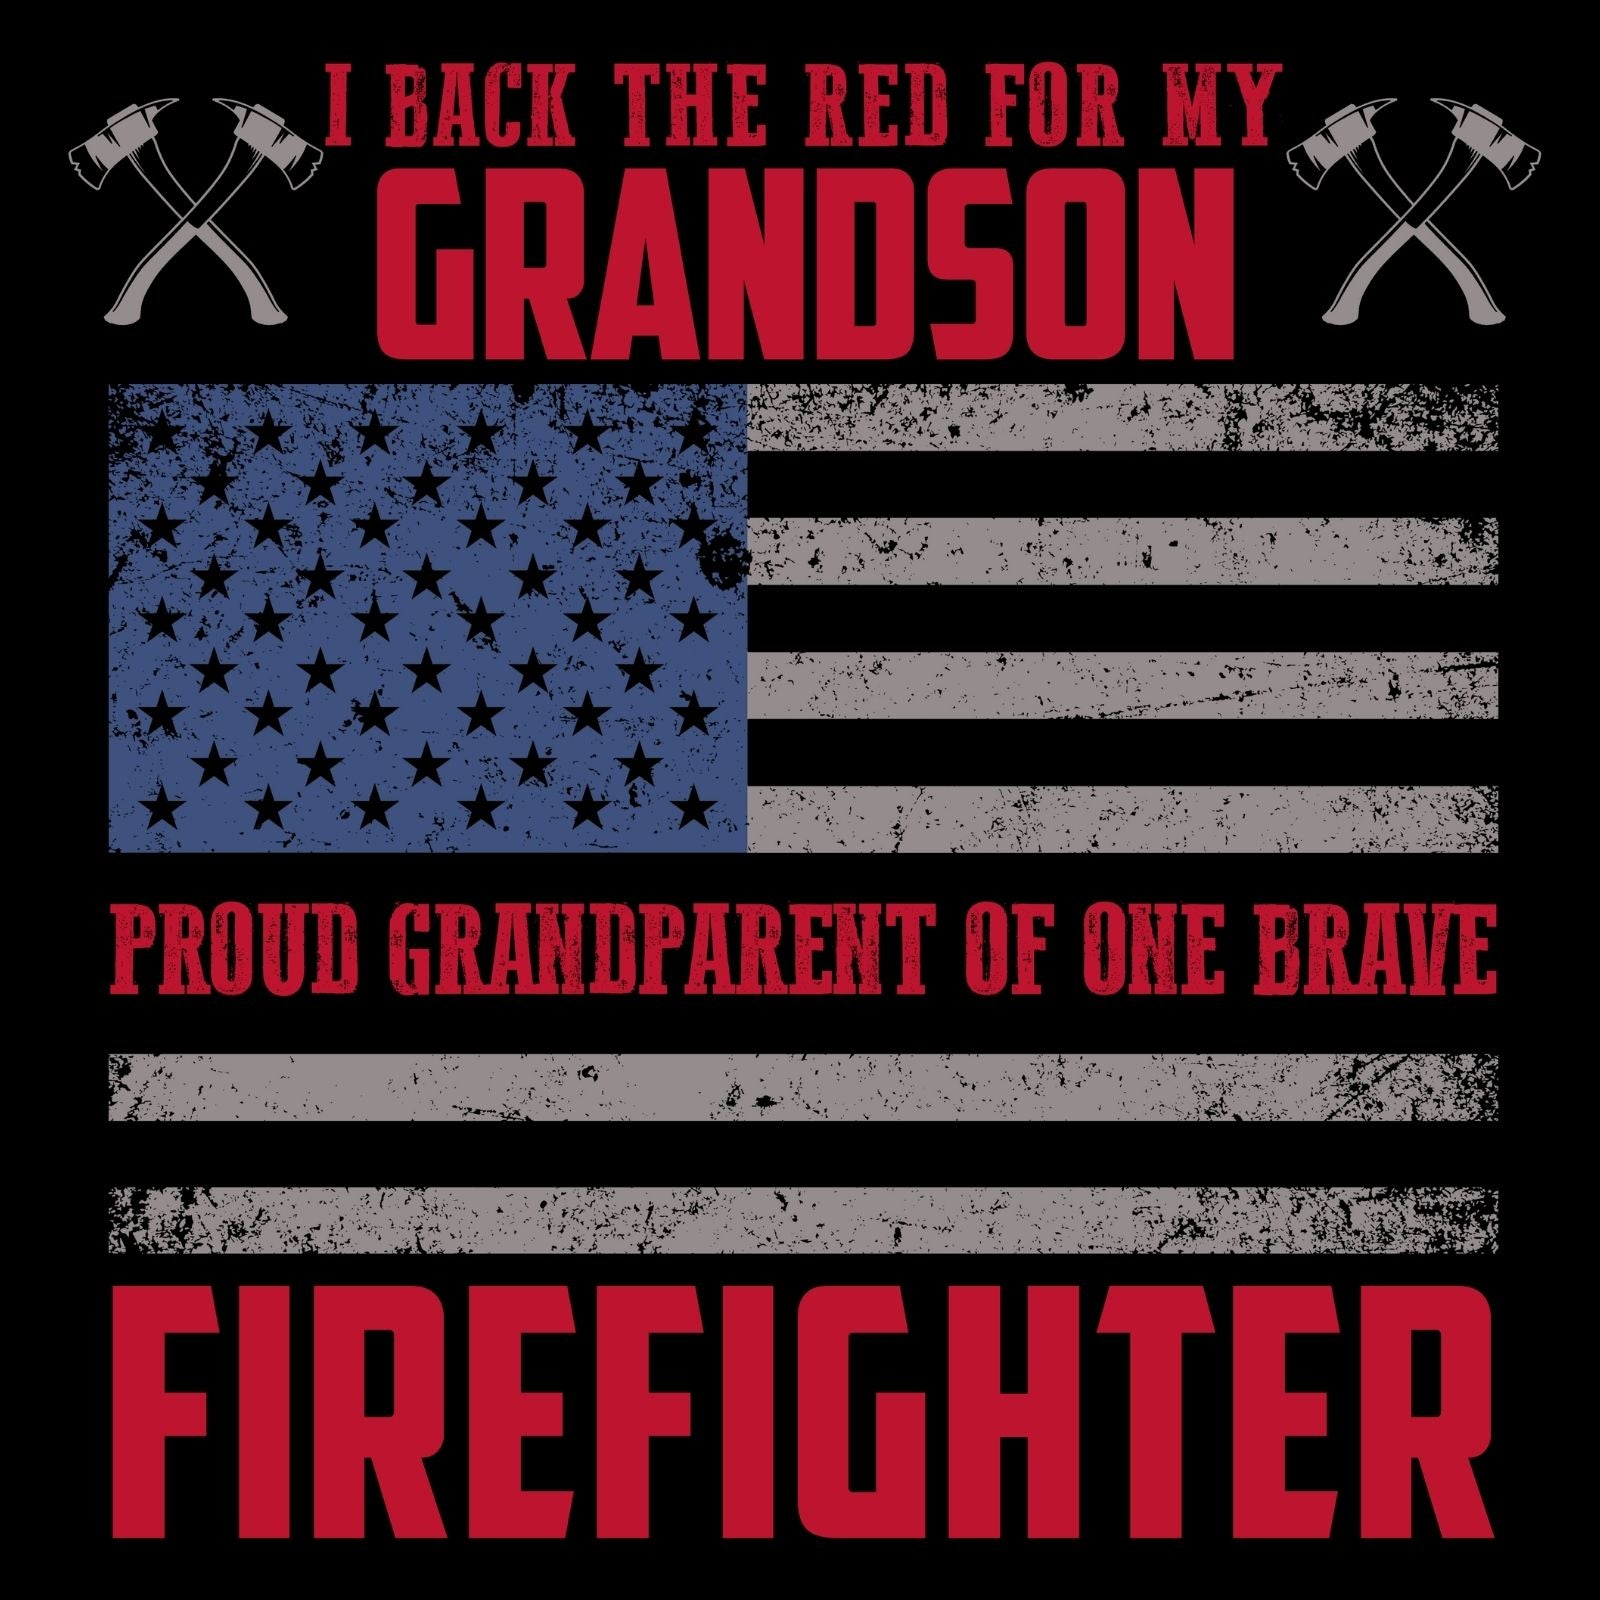 I Back The Red For My Grandson, Proud Grandparent Of One Brave Firefighter - Bastard Graphics